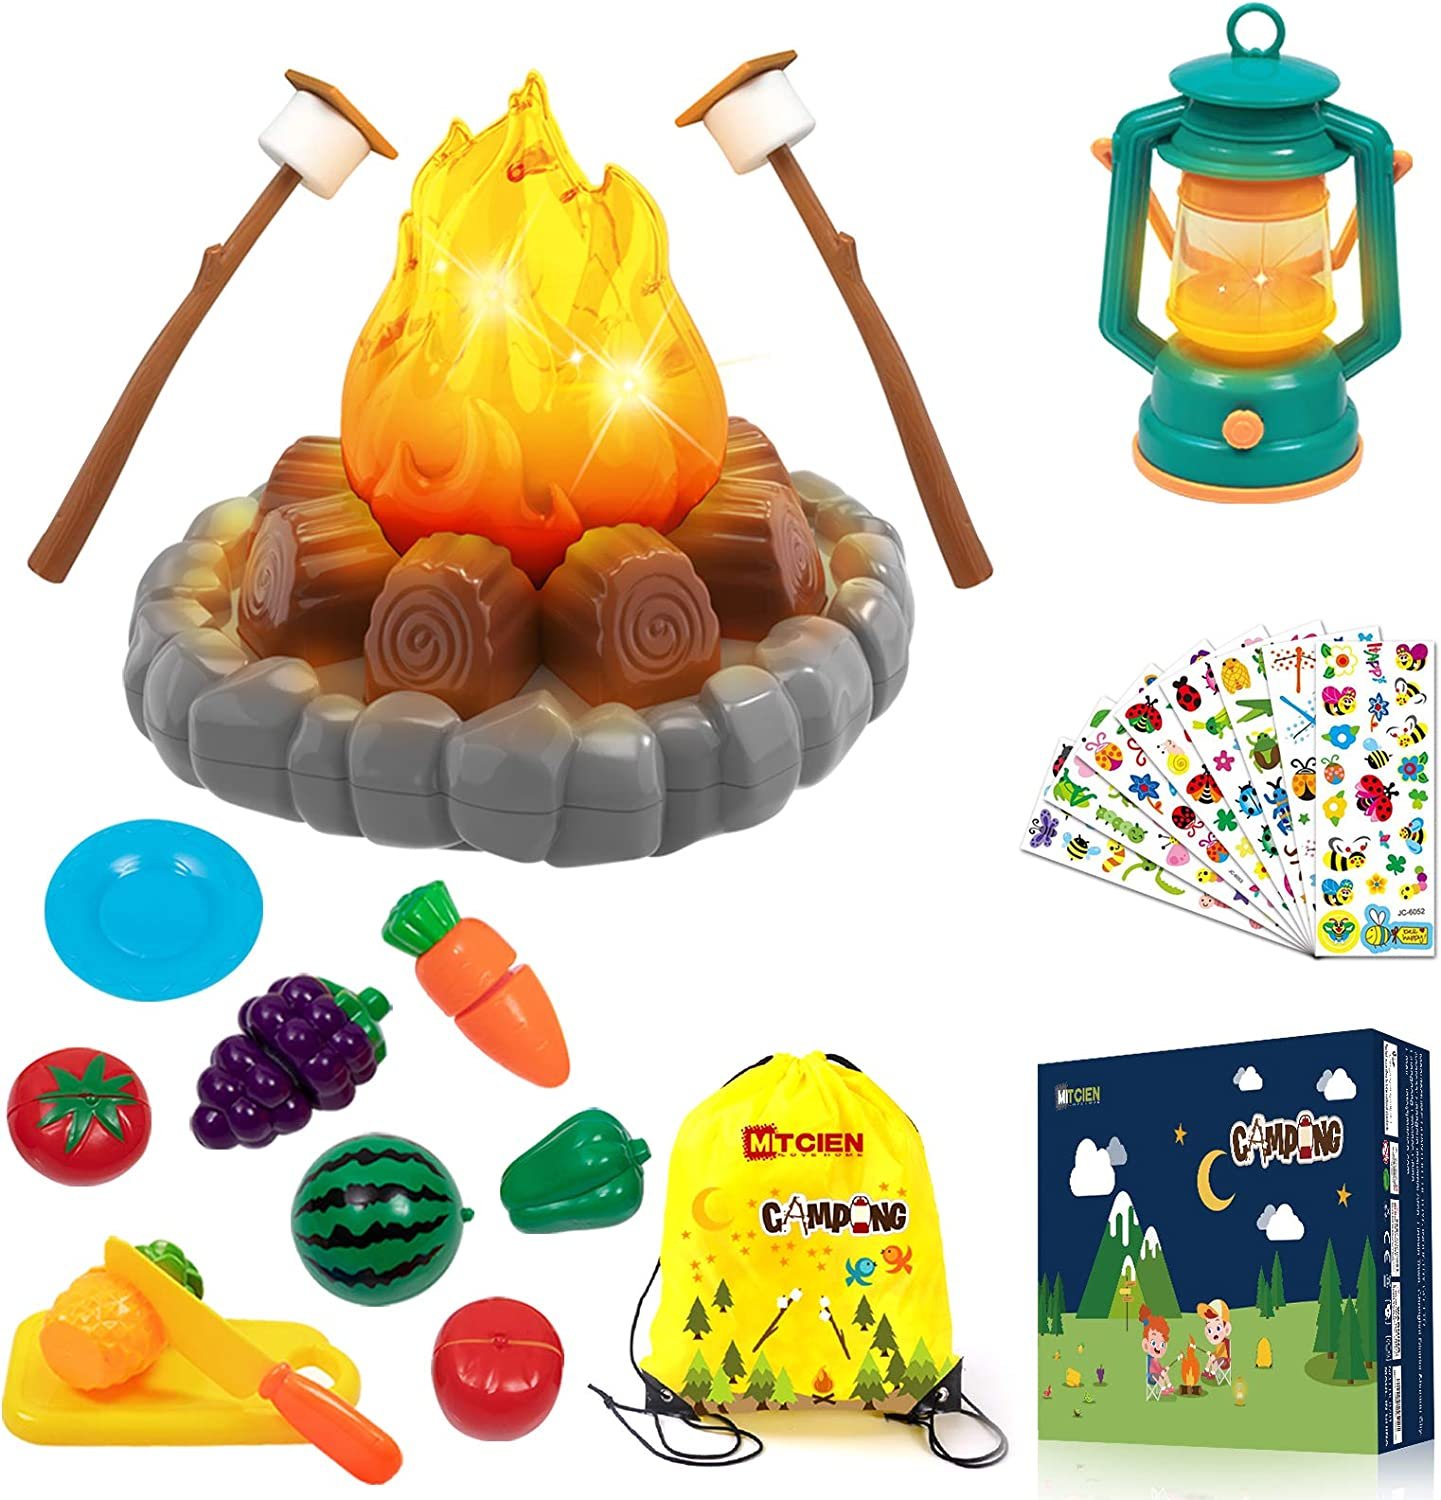 MITCIEN Pretend Camping Toy Play Set,Campfire,S'Mores,Oil Lantern,Fruits Sliced,Indoor Outdoor Toys for Ages 2,3,4,5,Ideal Gifts for Kids